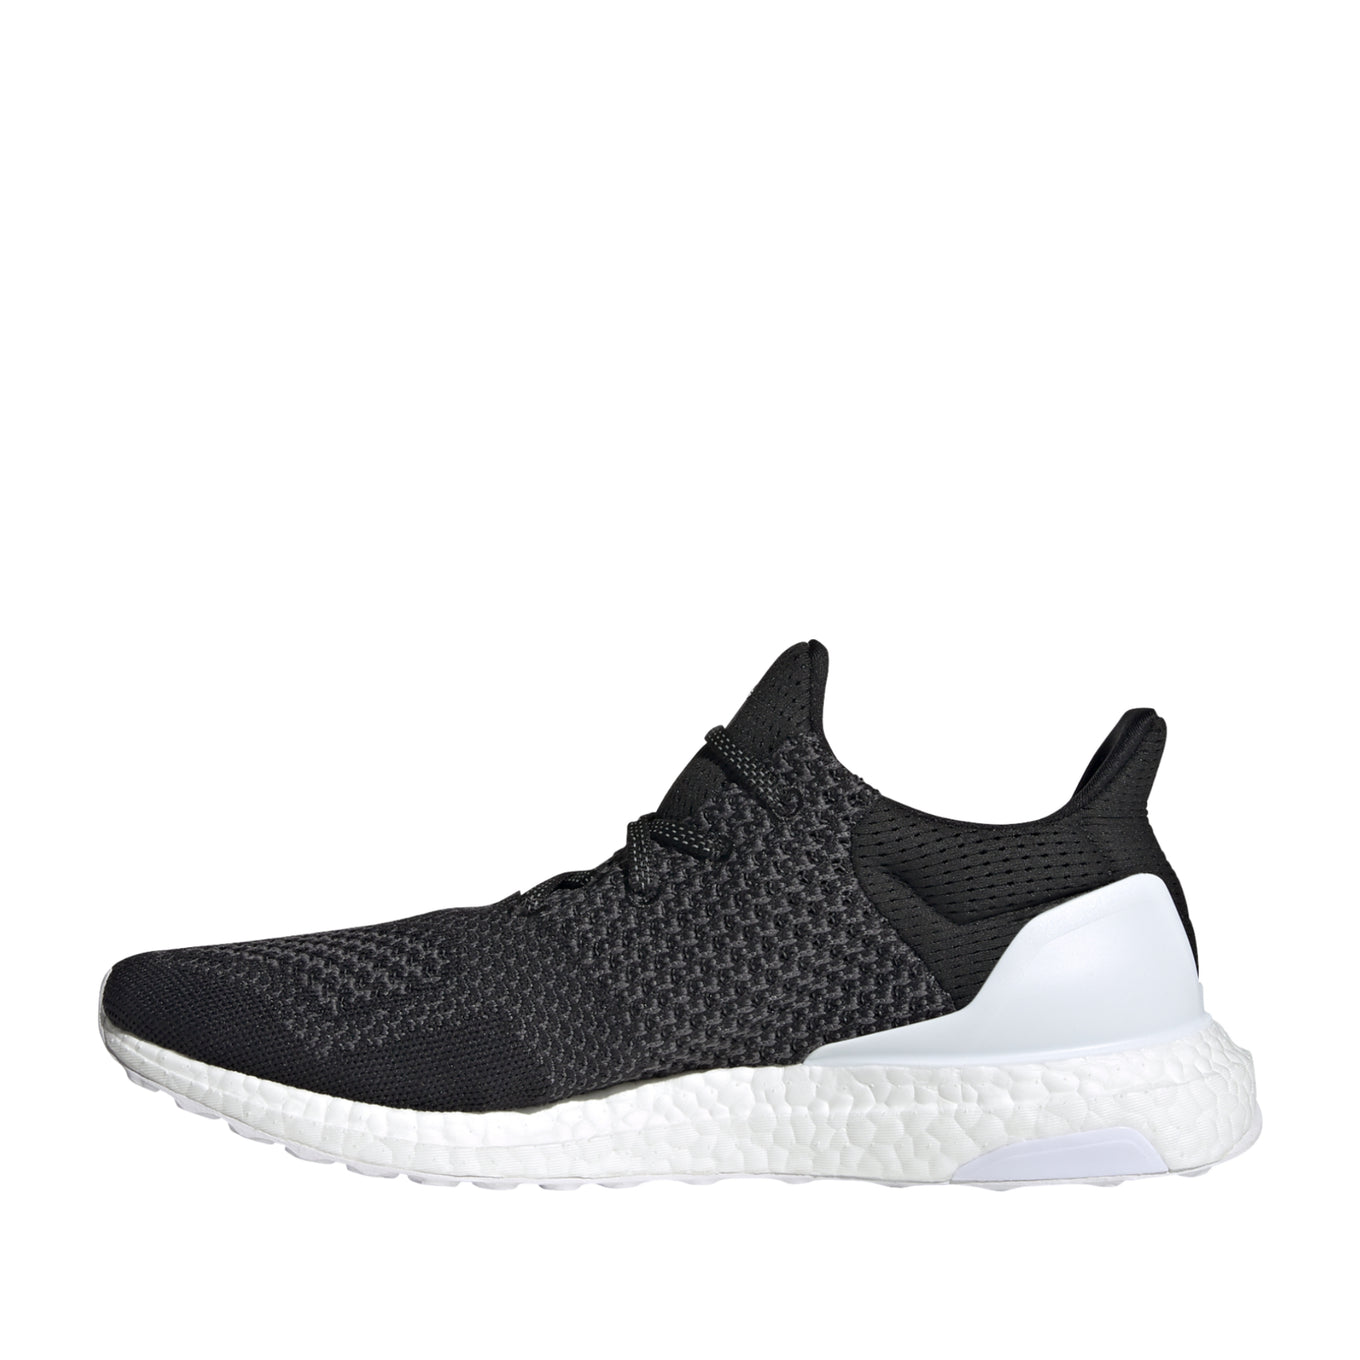 ADIDAS ULTRABOOST DNA